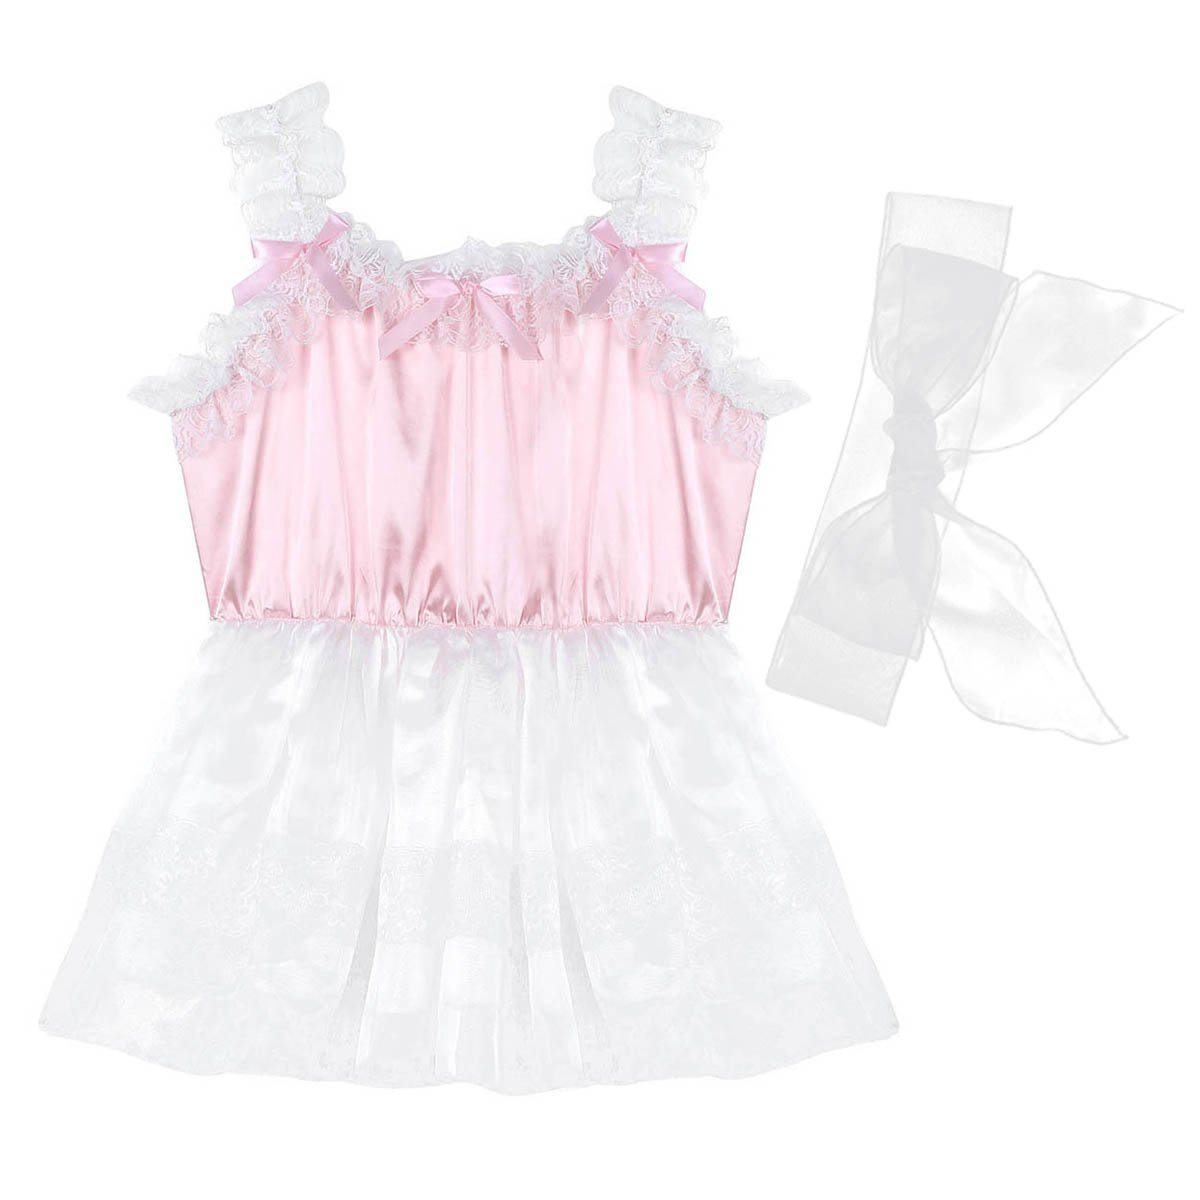 Ruffled Lace Tulle Sissy Dress Sissy Panty Shop